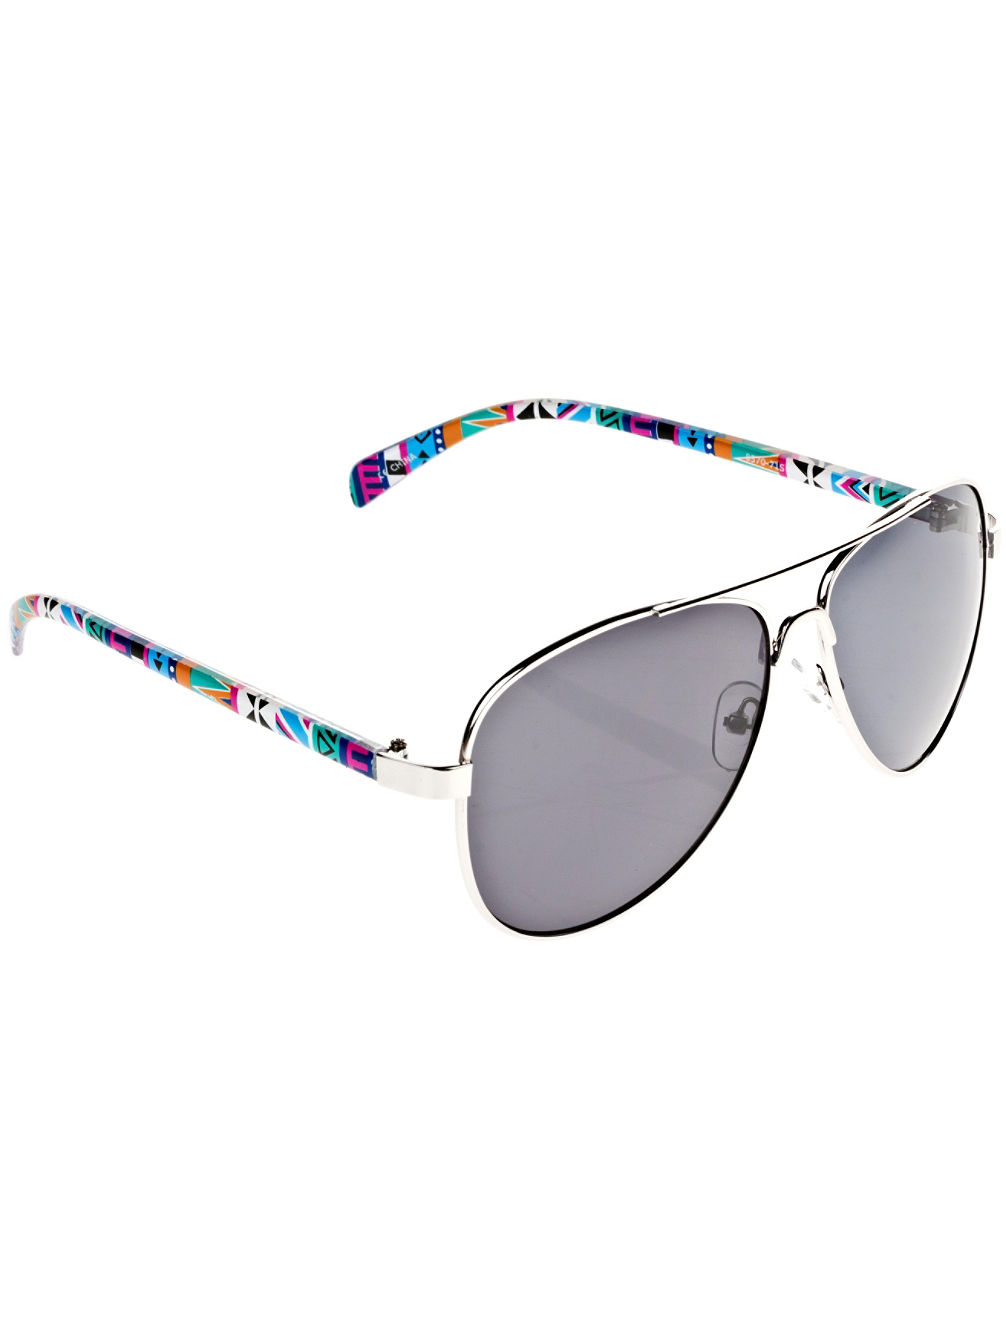 Empyre Girls Max Silver